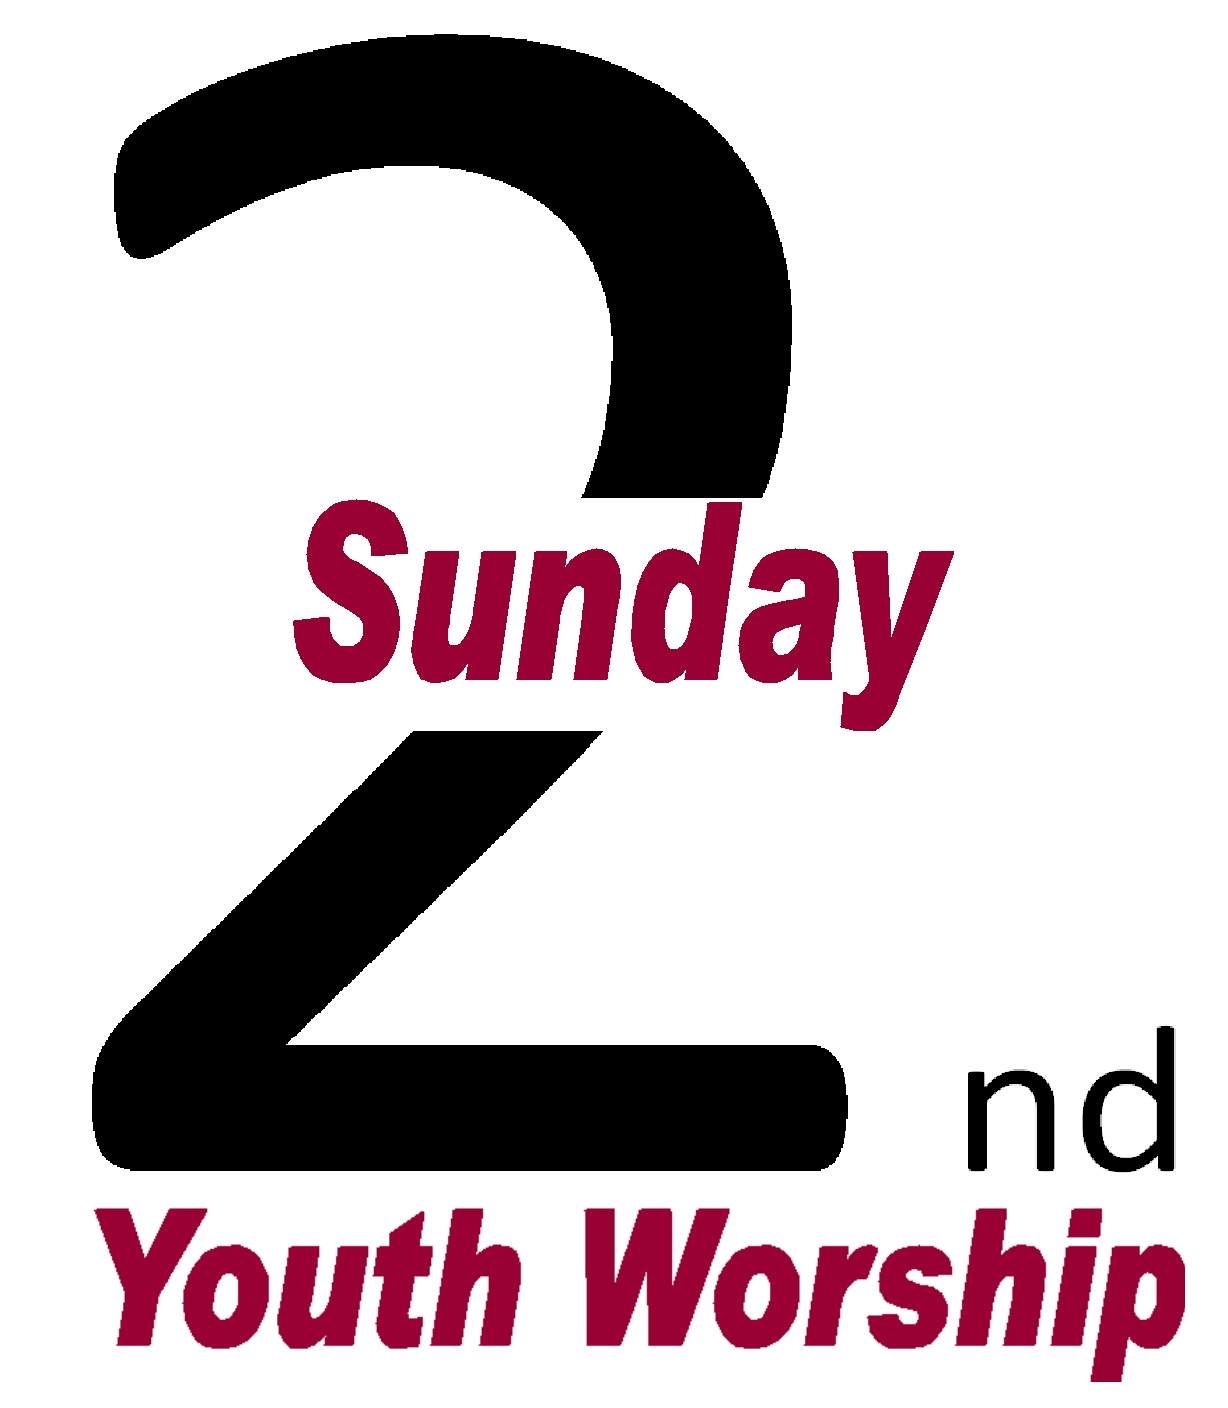 Church Youth Group Clip Art N4 free image.